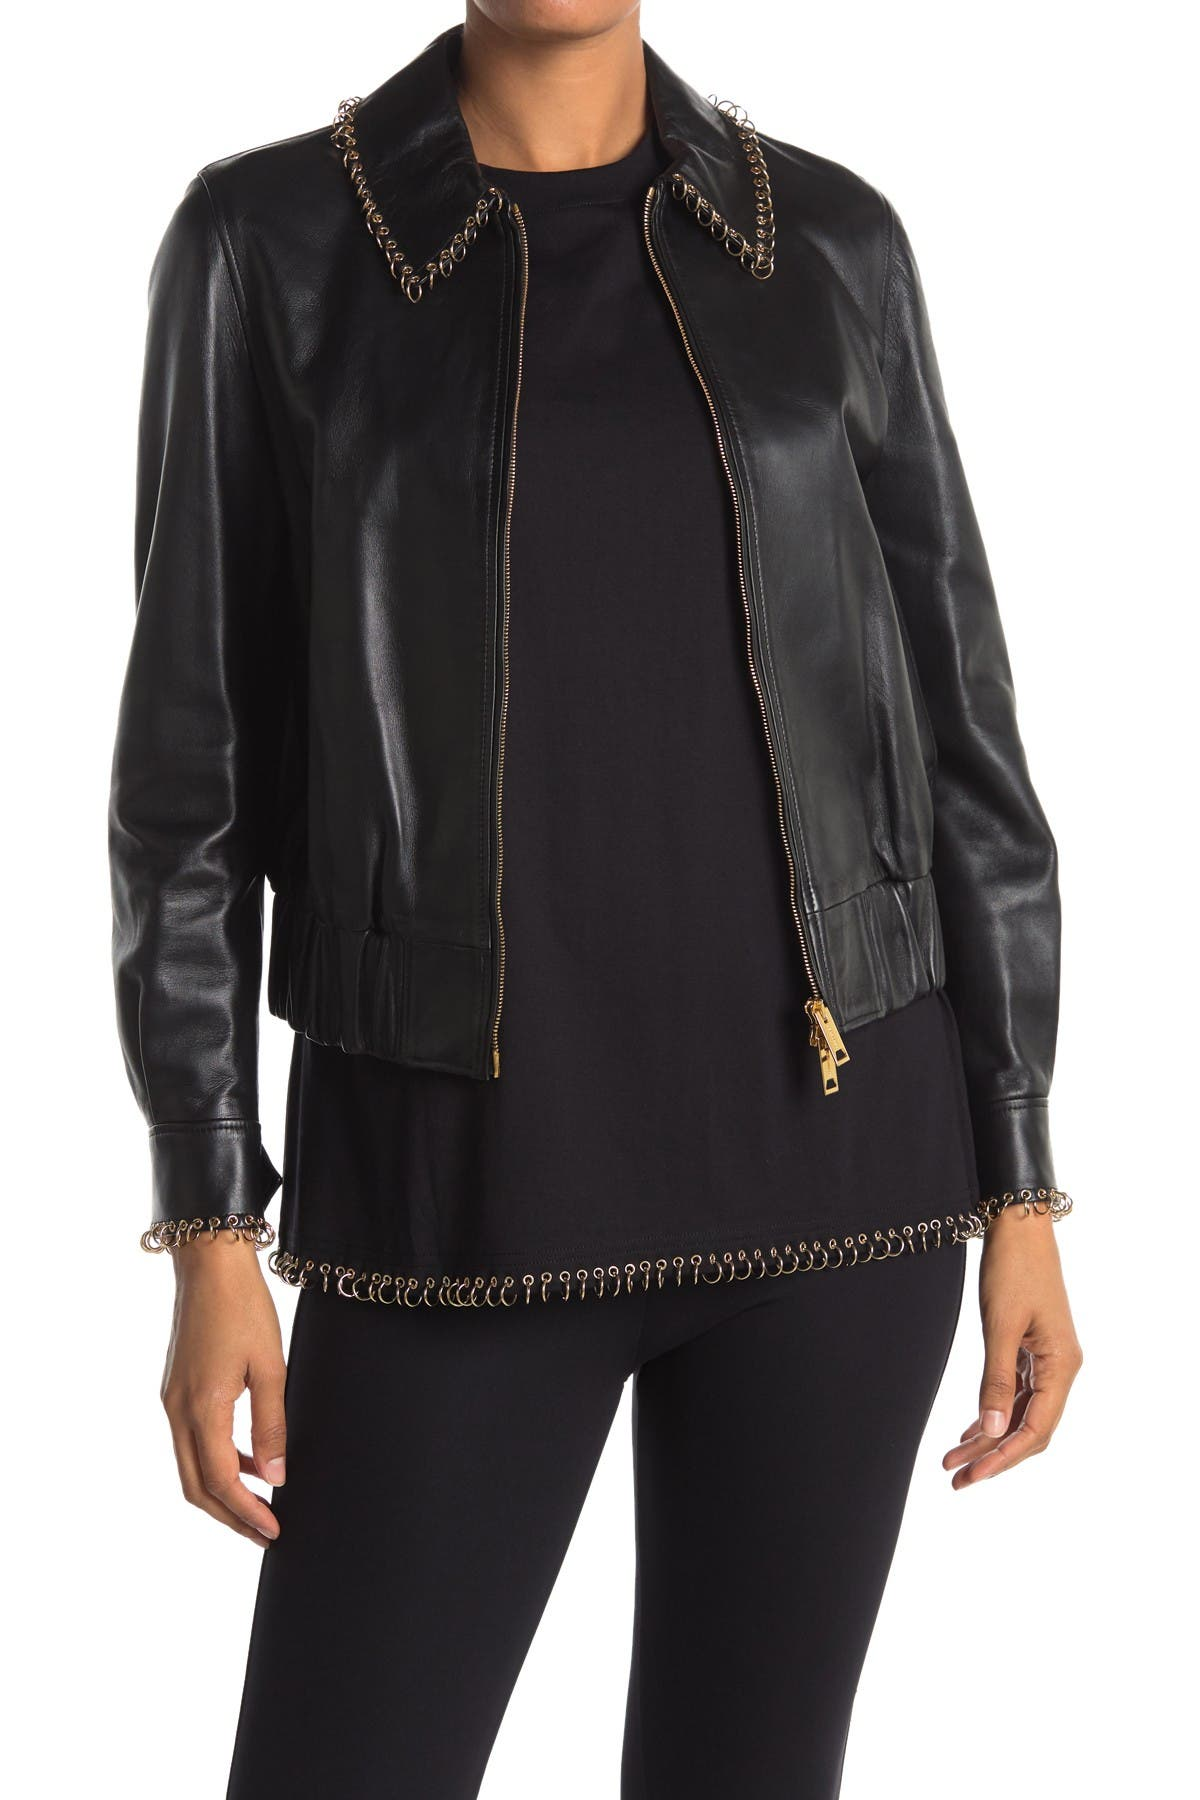 Image of Burberry Cranleigh Leather Bomber Jacket